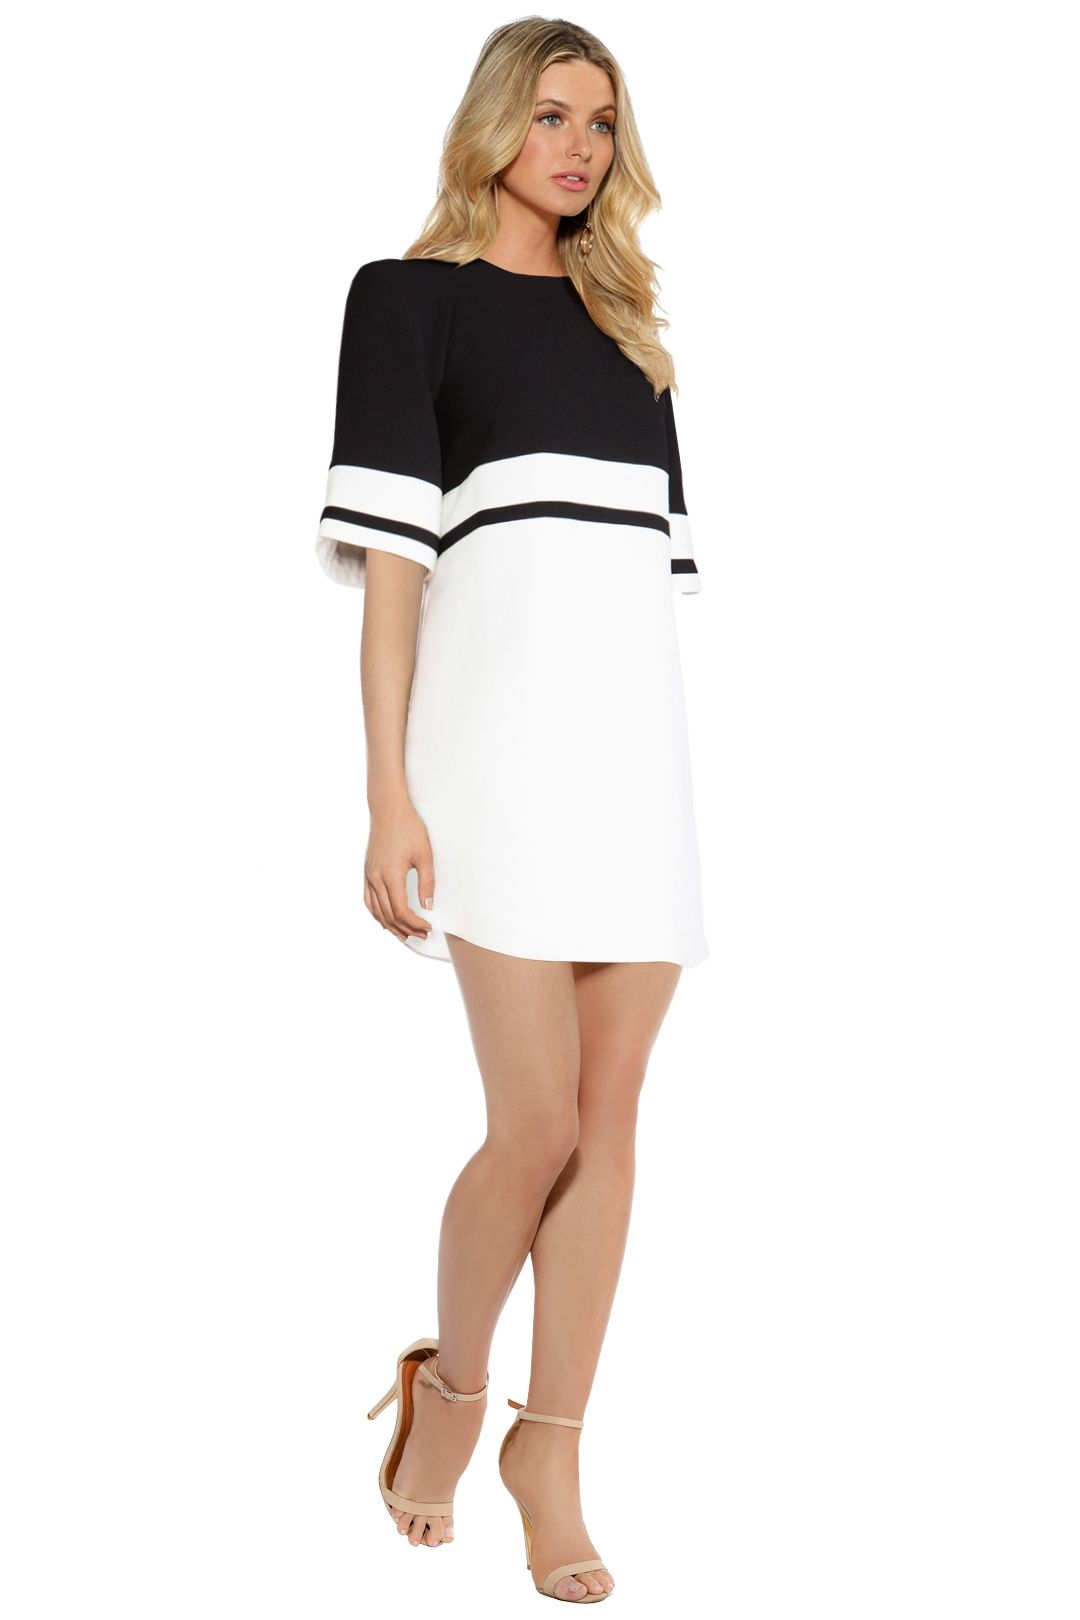 C/MEO Collective - We Are Young Dress - Black White - Side